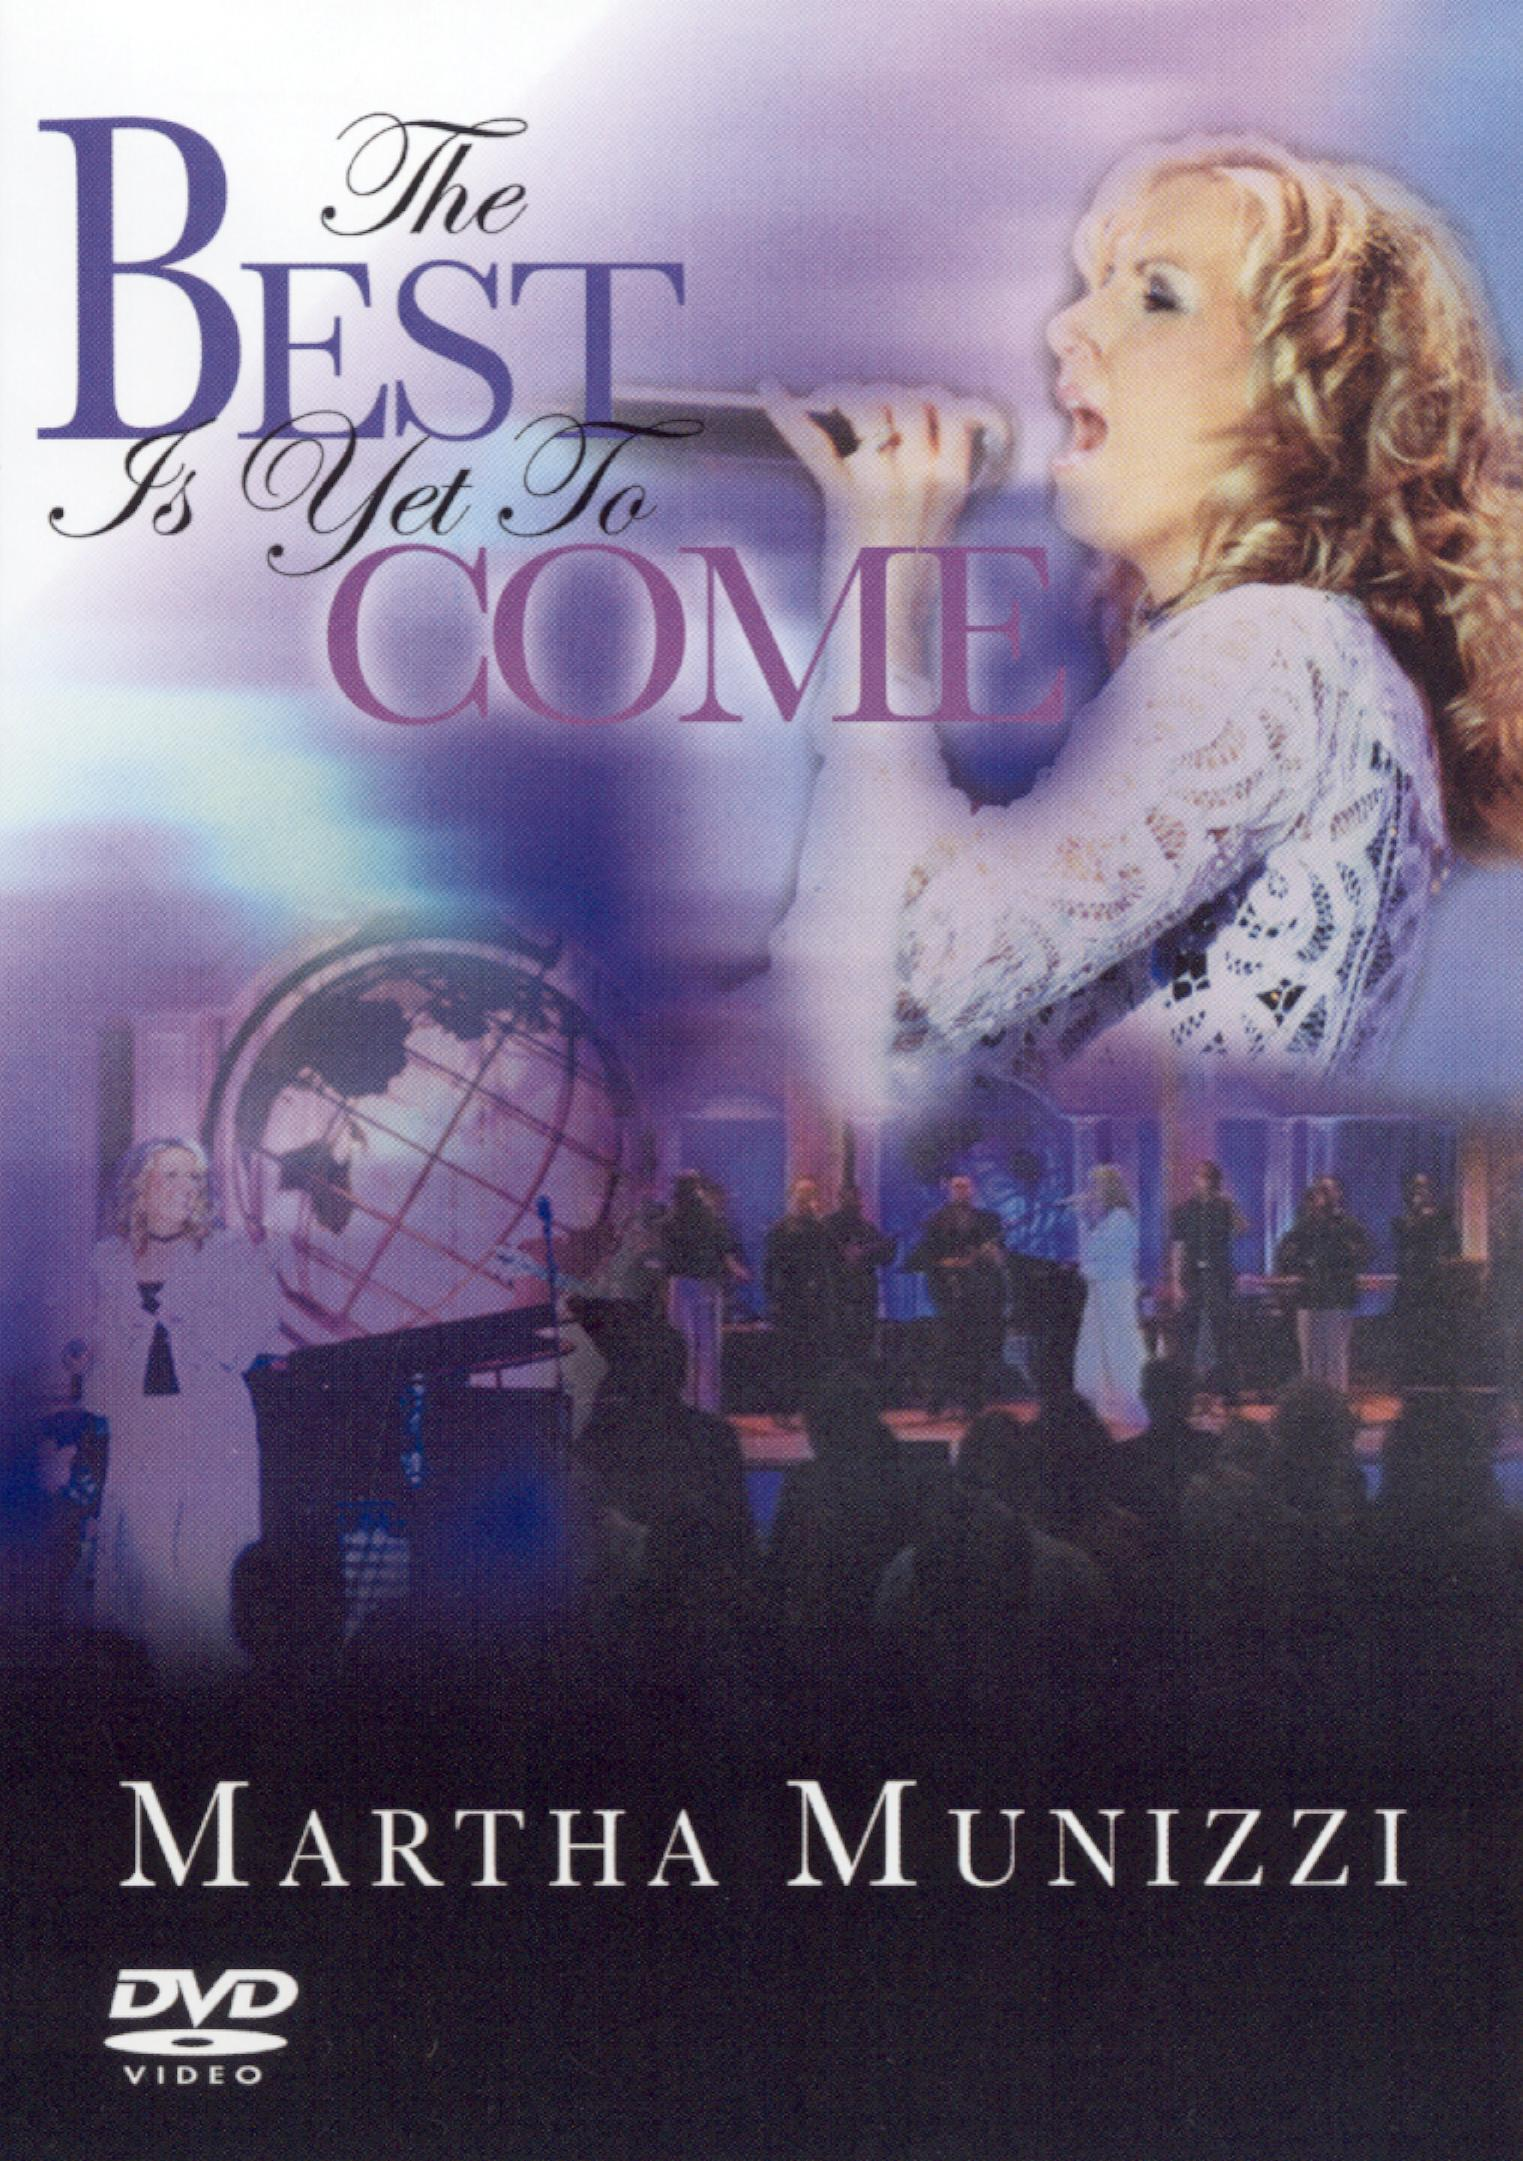 Martha Munizzi: The Best Is Yet to Come